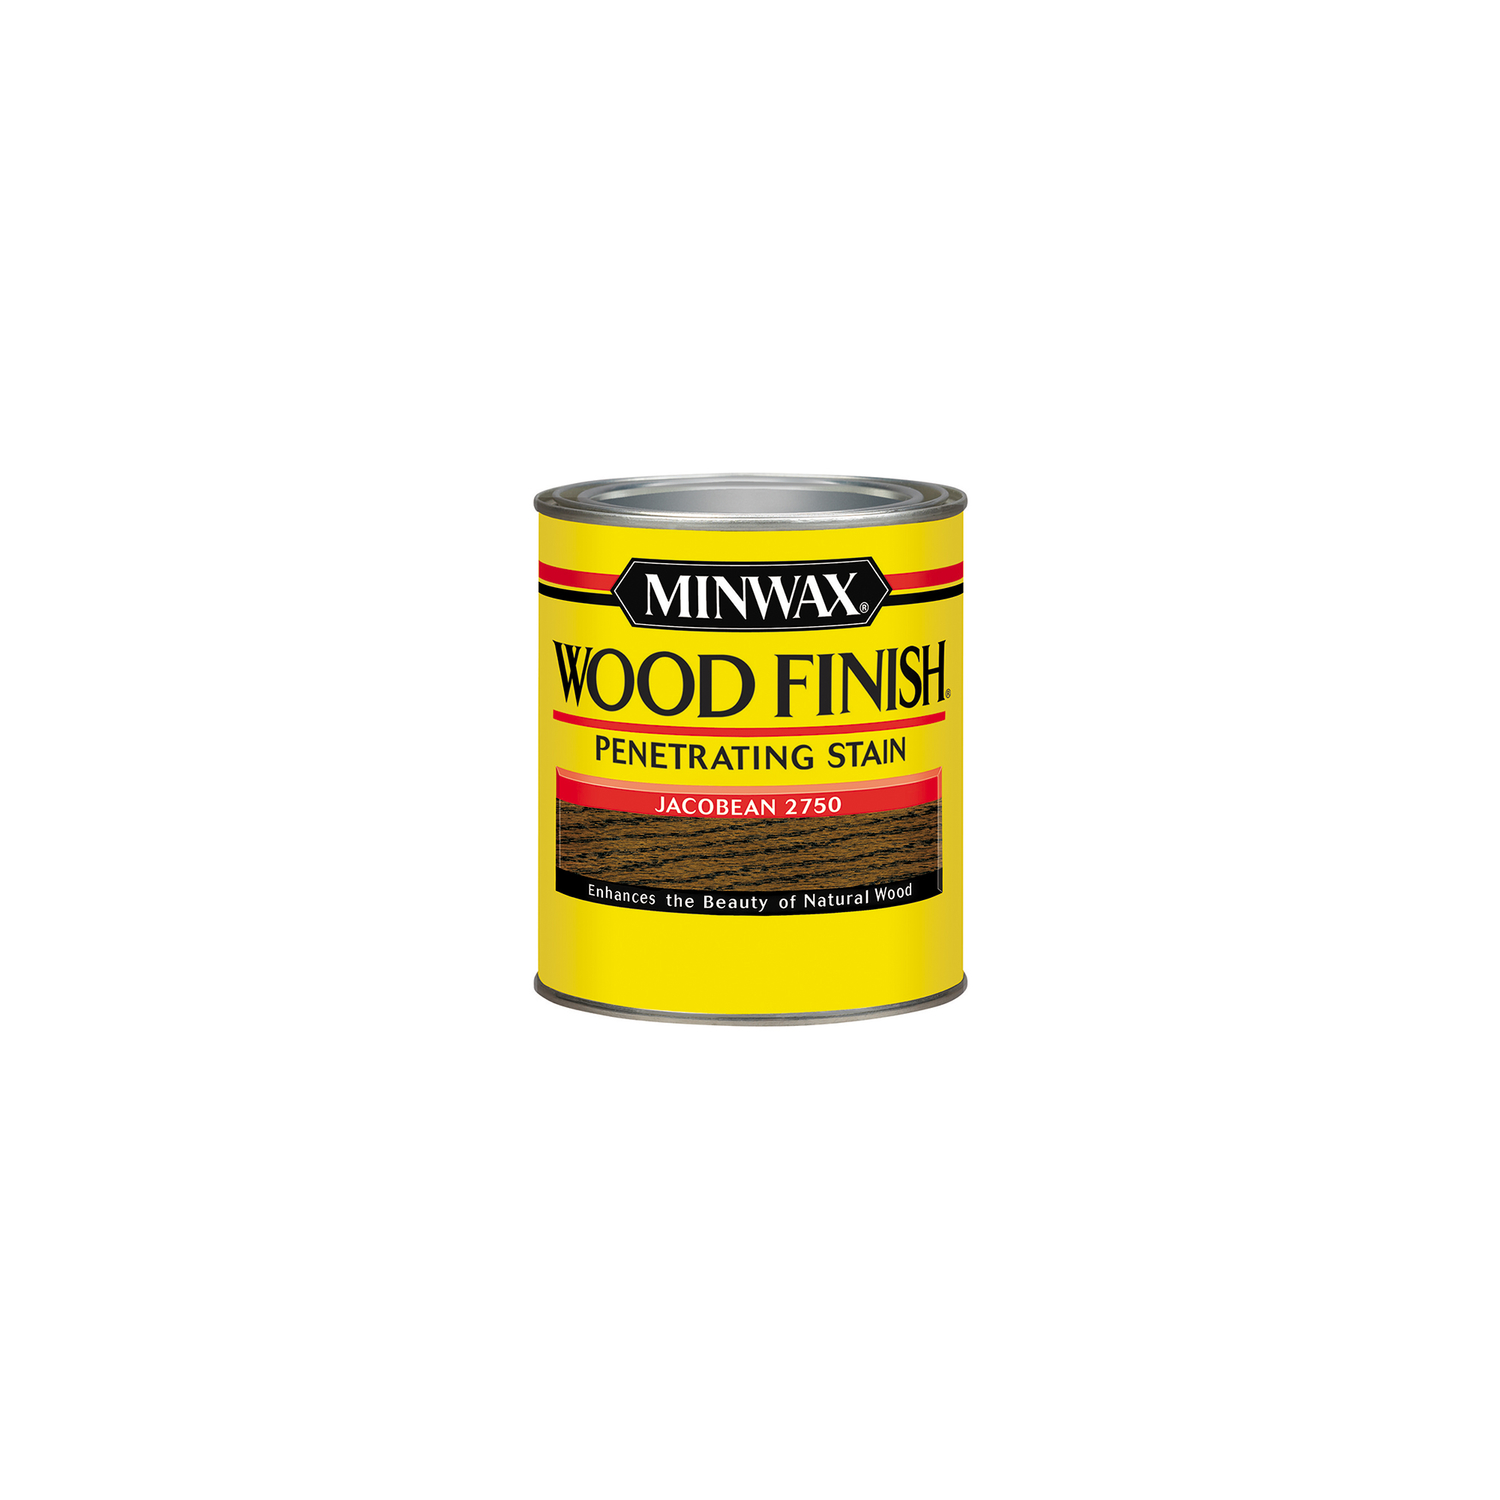 Minwax  Wood Finish  Semi-Transparent  Jacobean  Oil-Based  Oil  Wood Stain  0.5 pt.